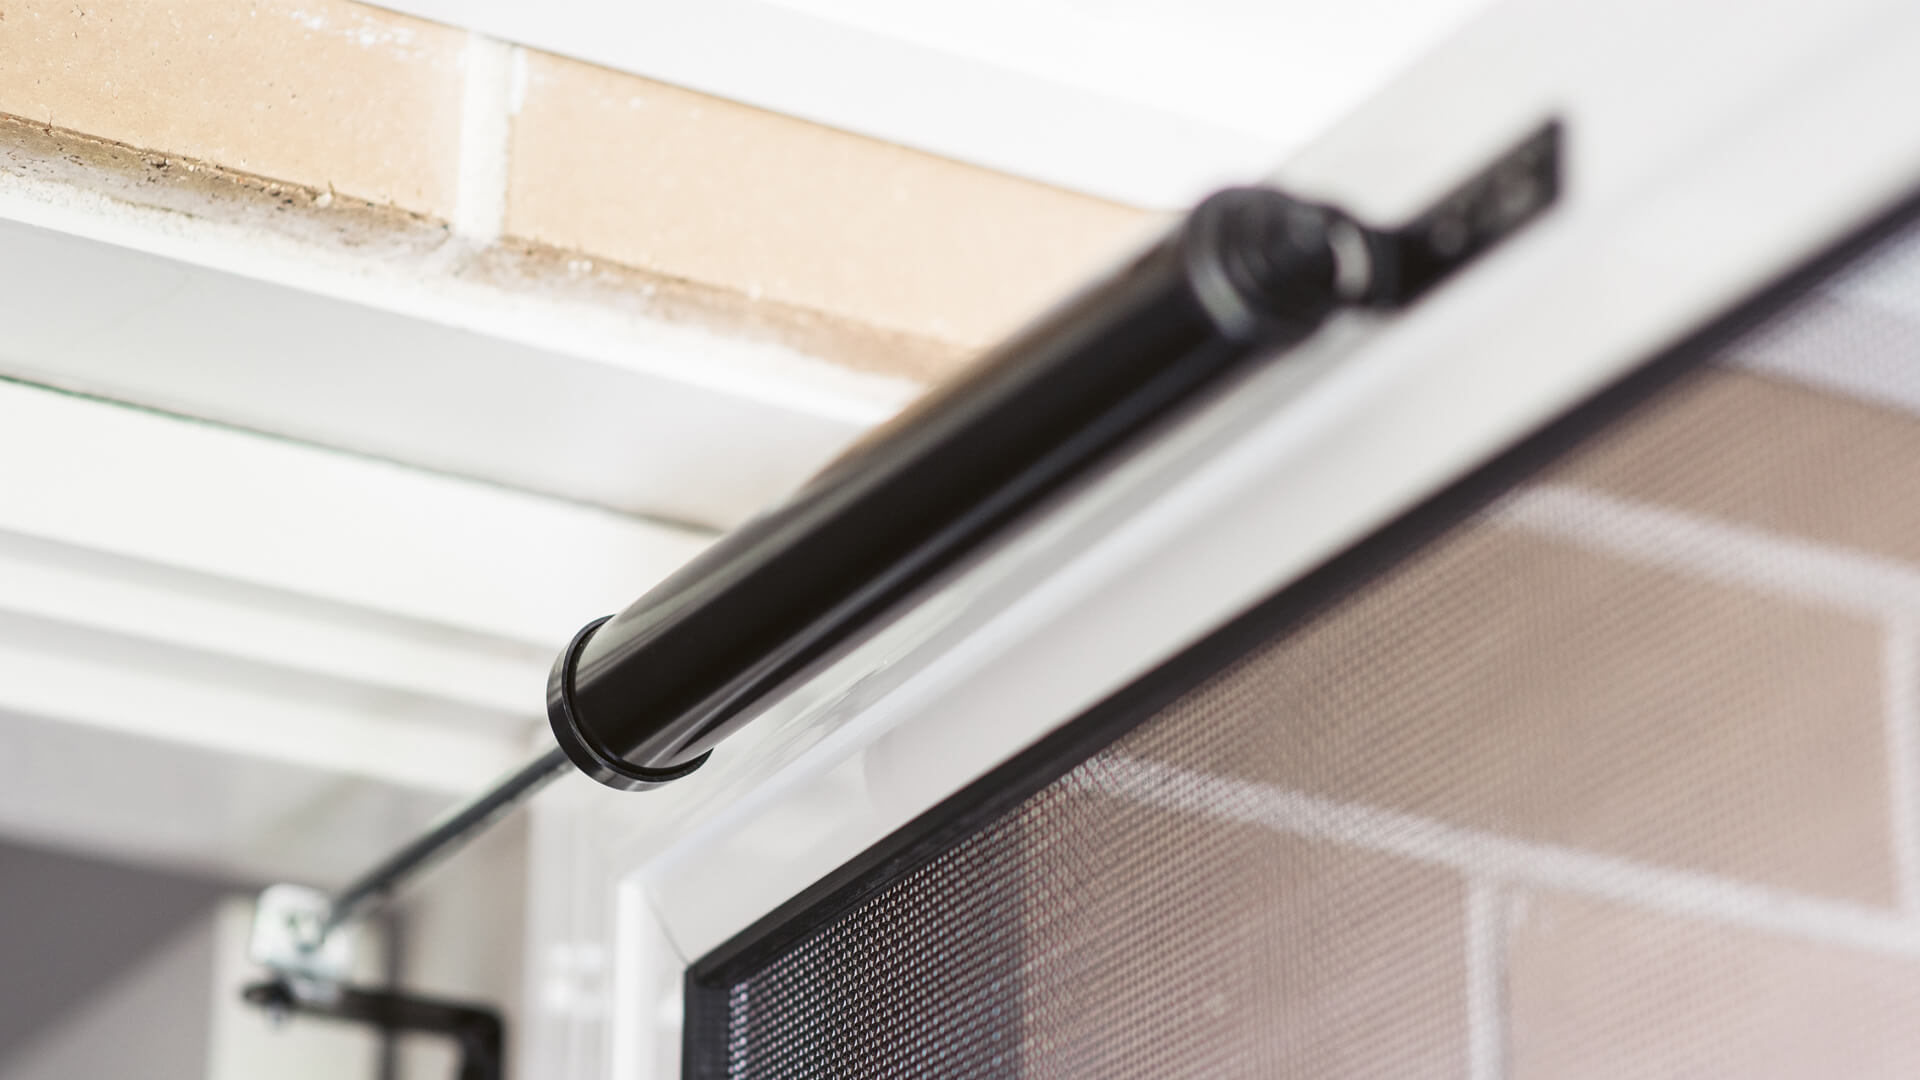 Door Closers help with smooth operation of hinged security screen doors